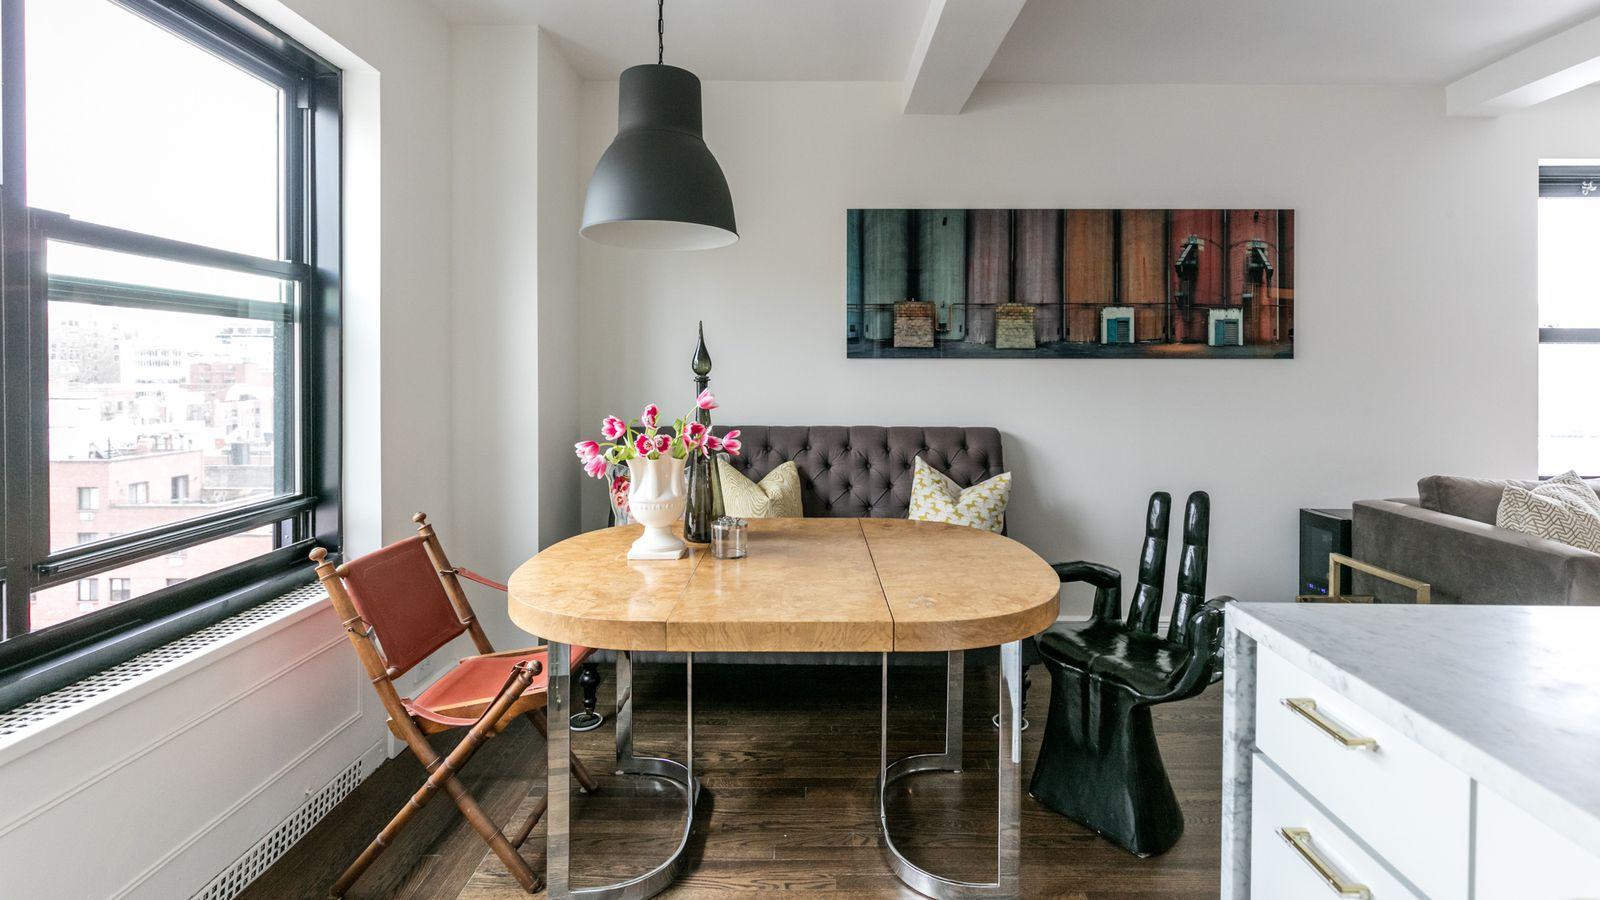 An Interior Designers Gut Renovation Transforms A Dated